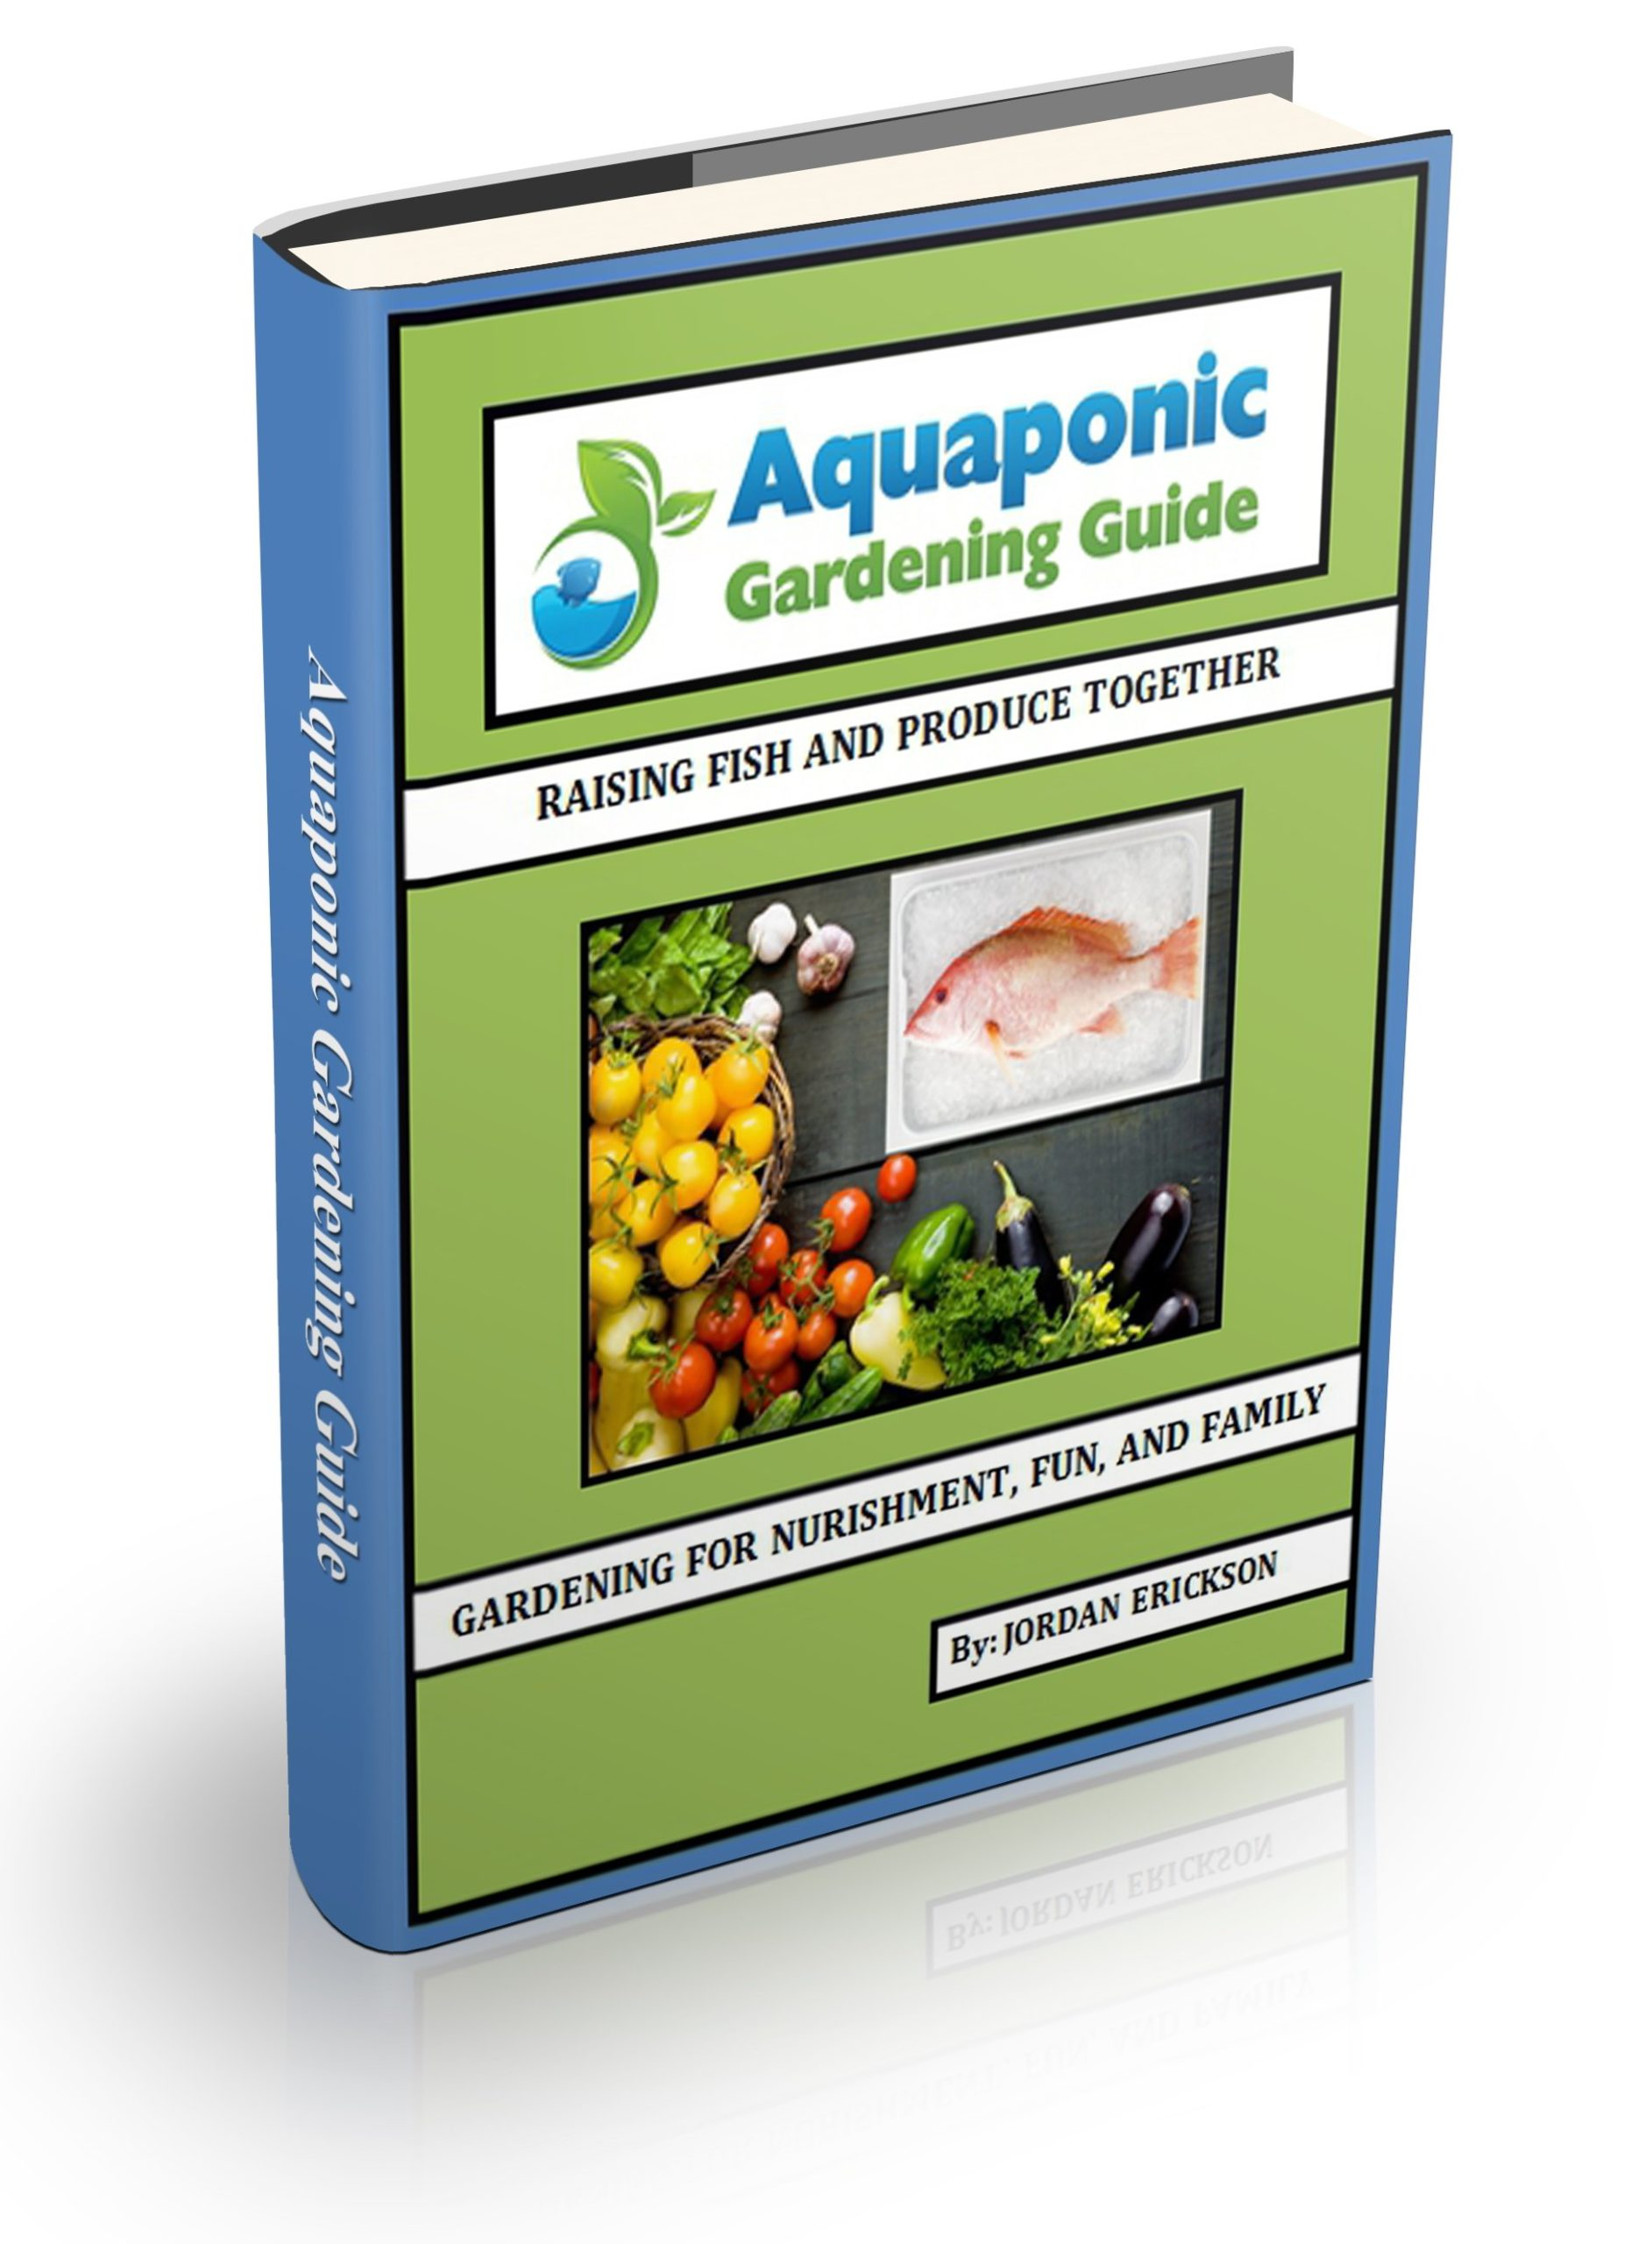 Aquaponic Gardening Guide Book